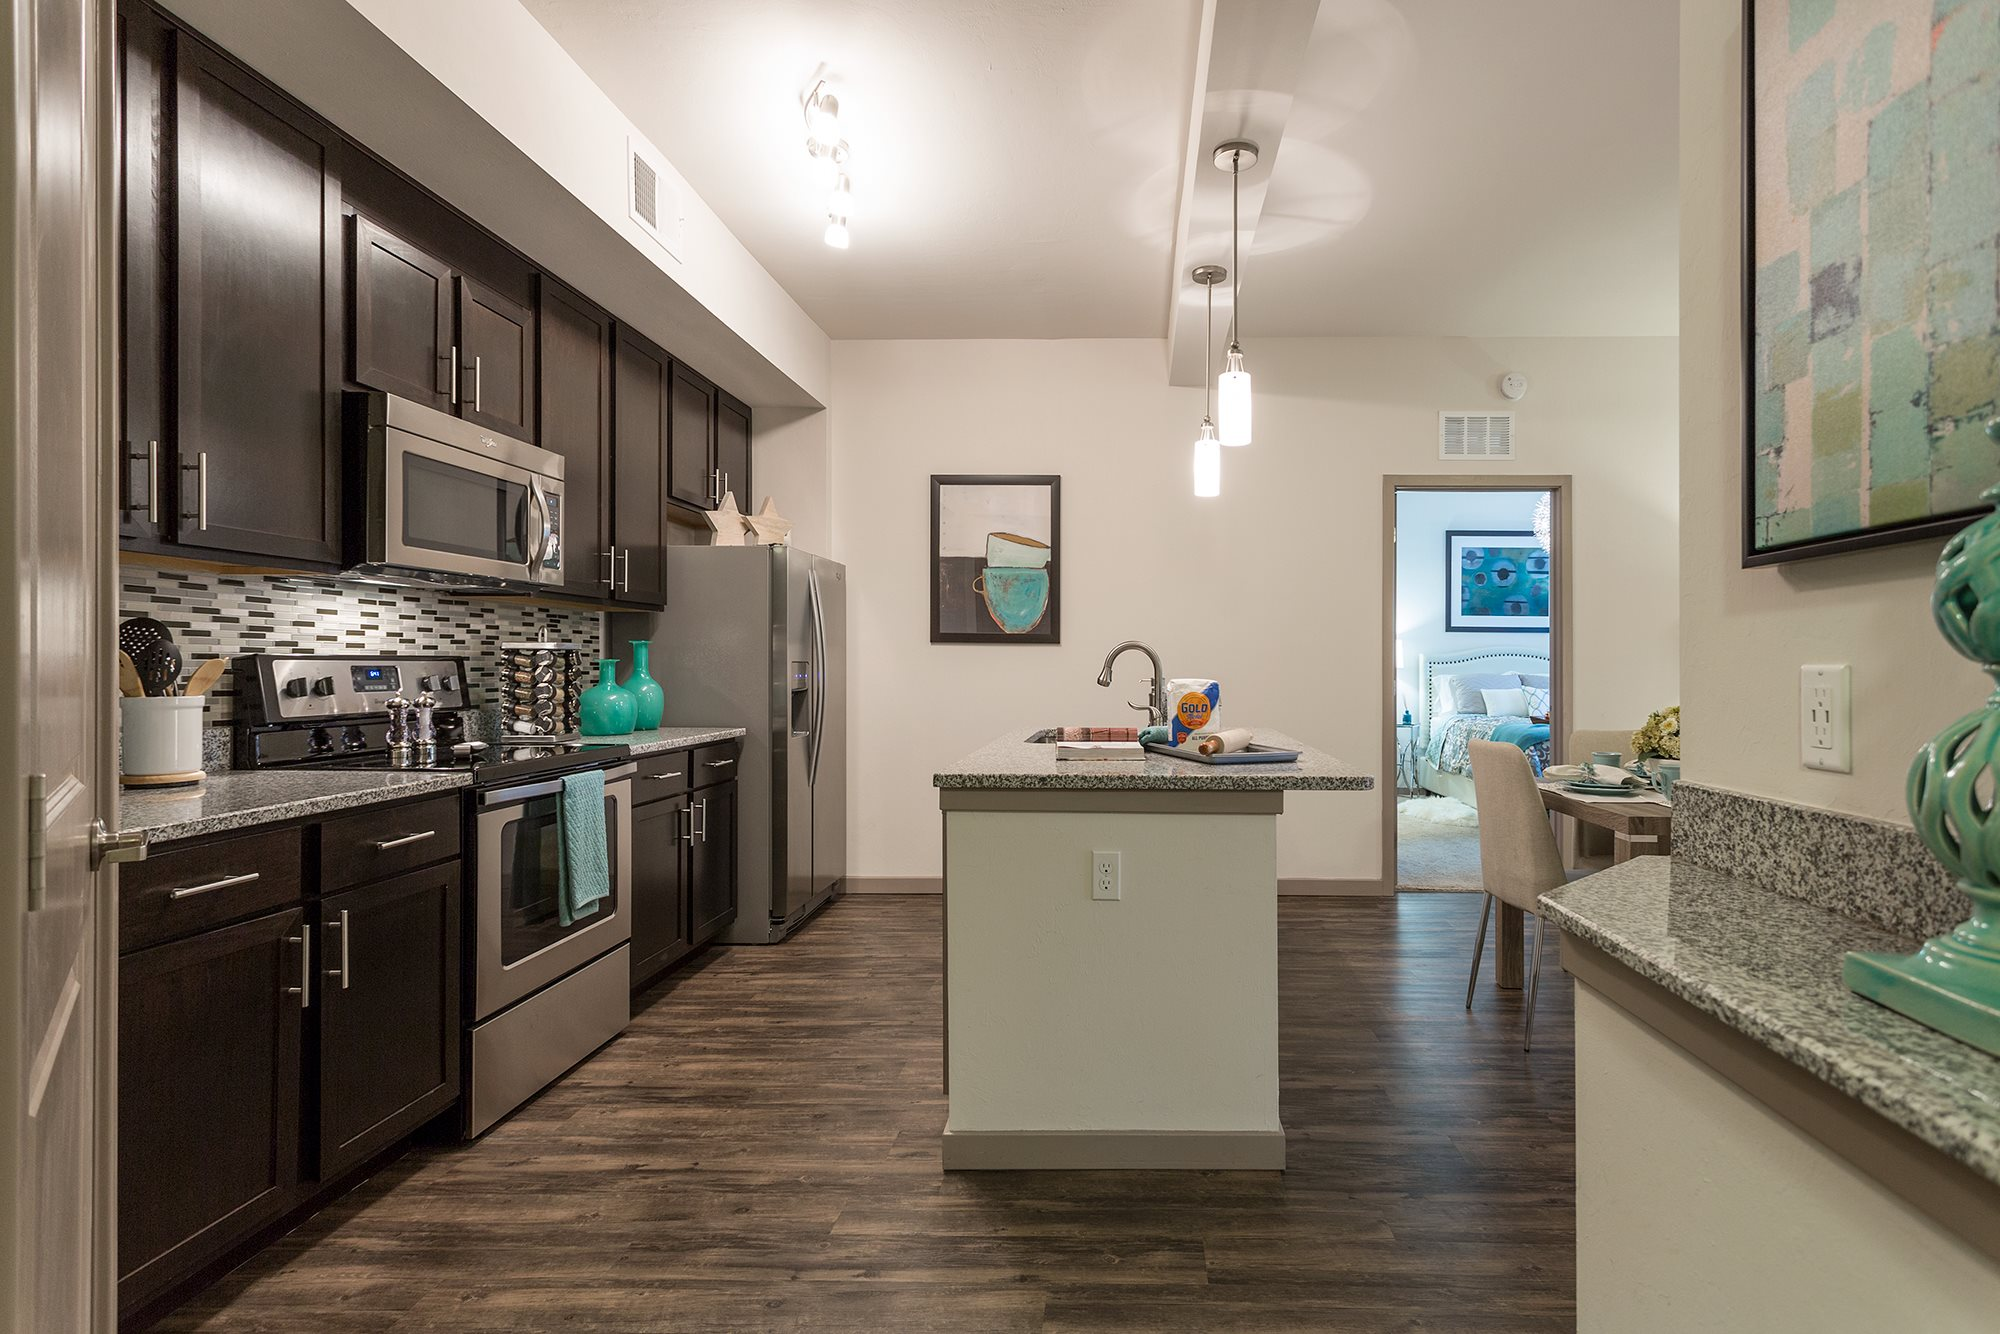 Kitchen at Orchid Run Apartments in Naples, FL